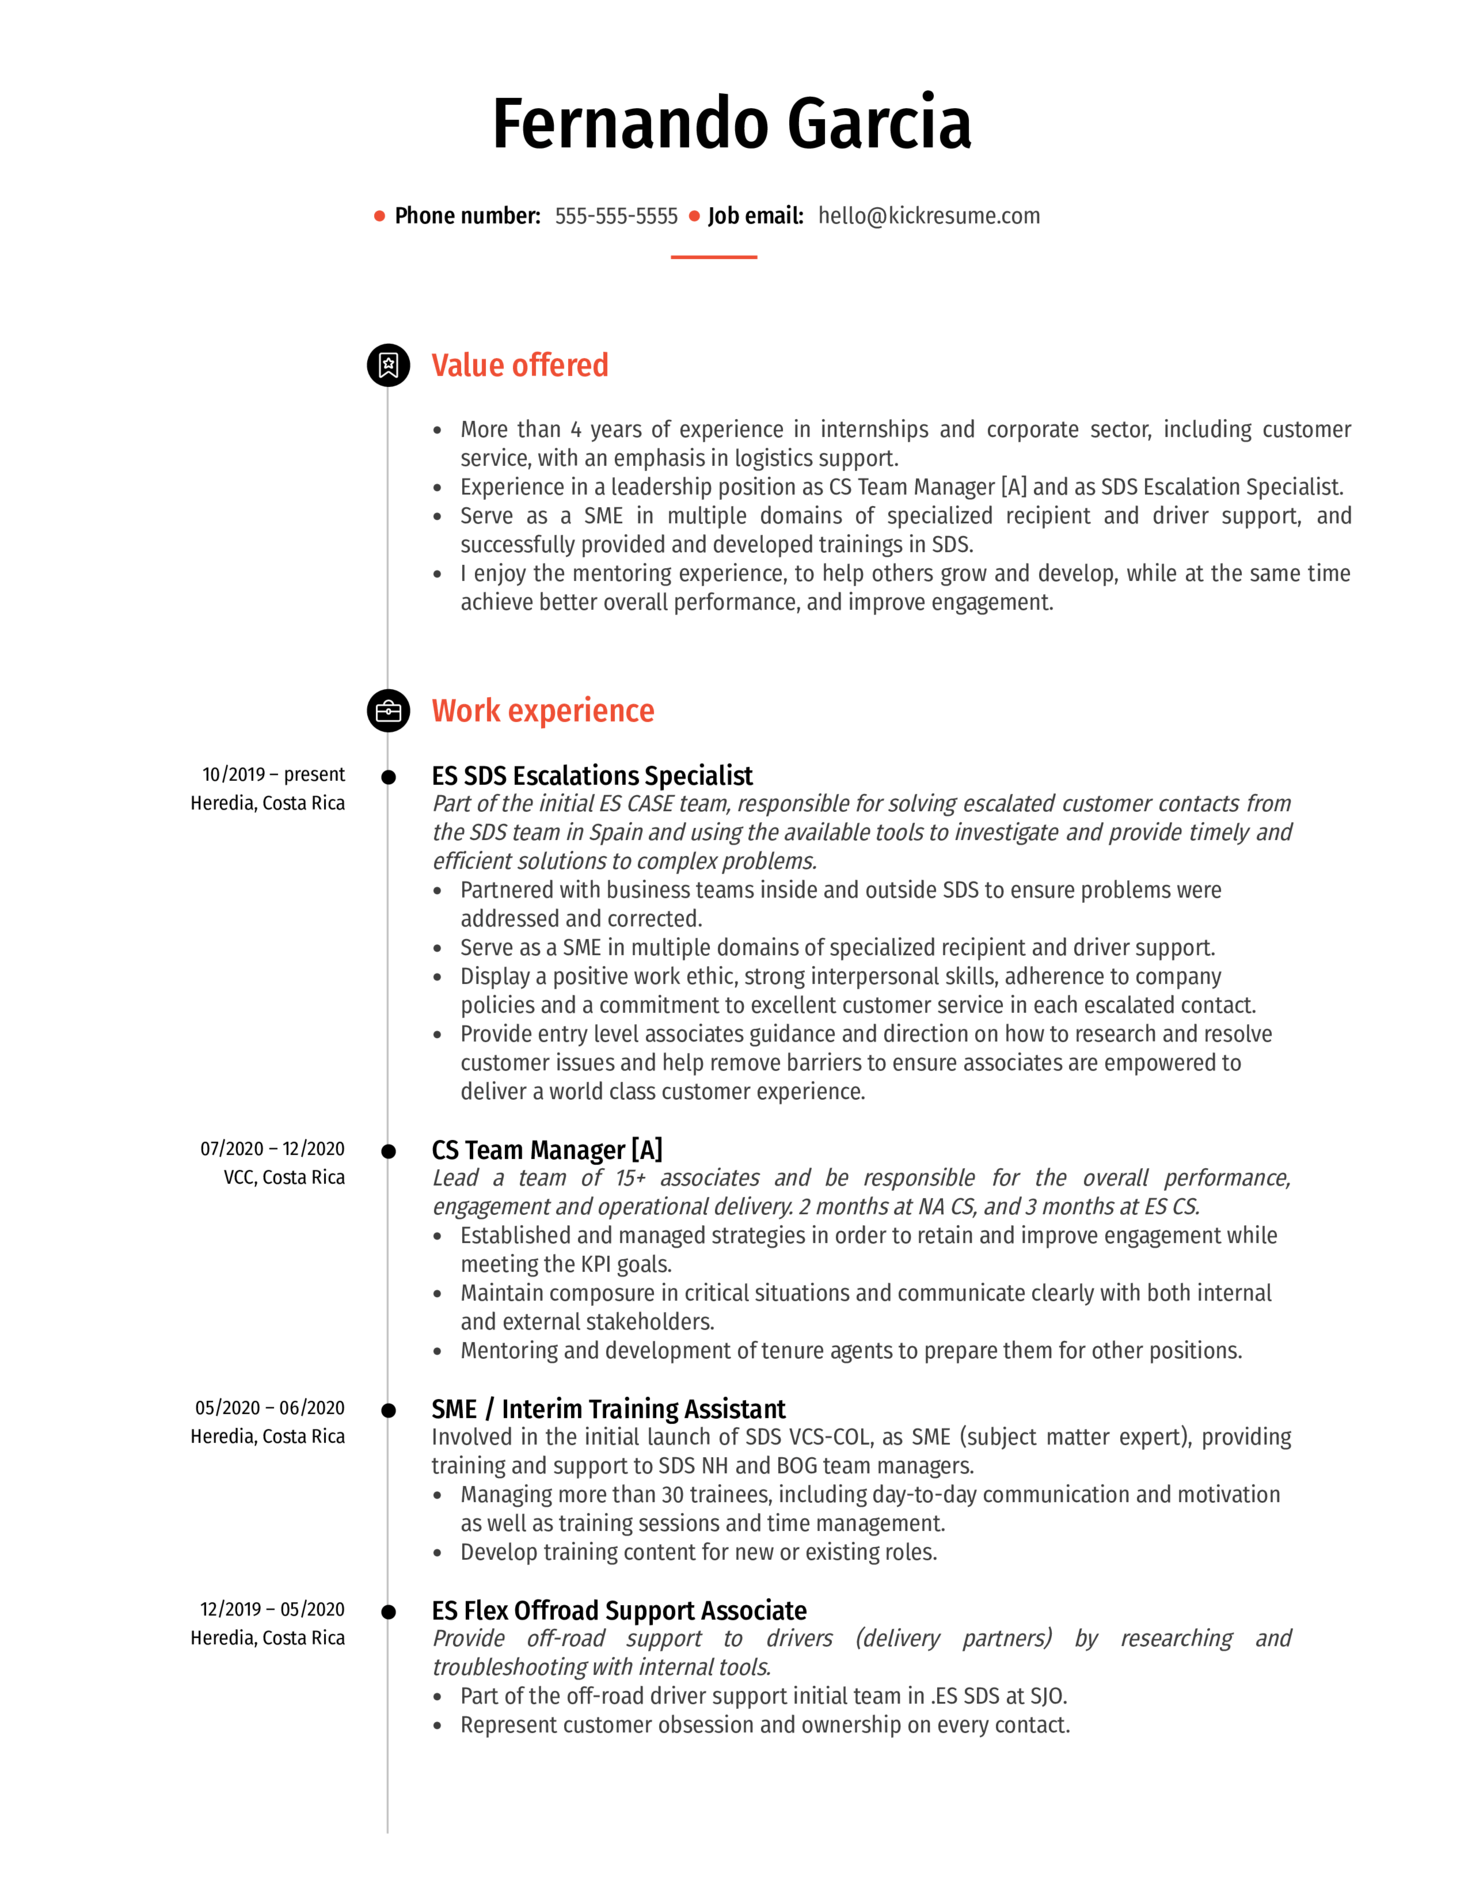 SDS Training Specialist at Amazon Resume Sample (parte 1)